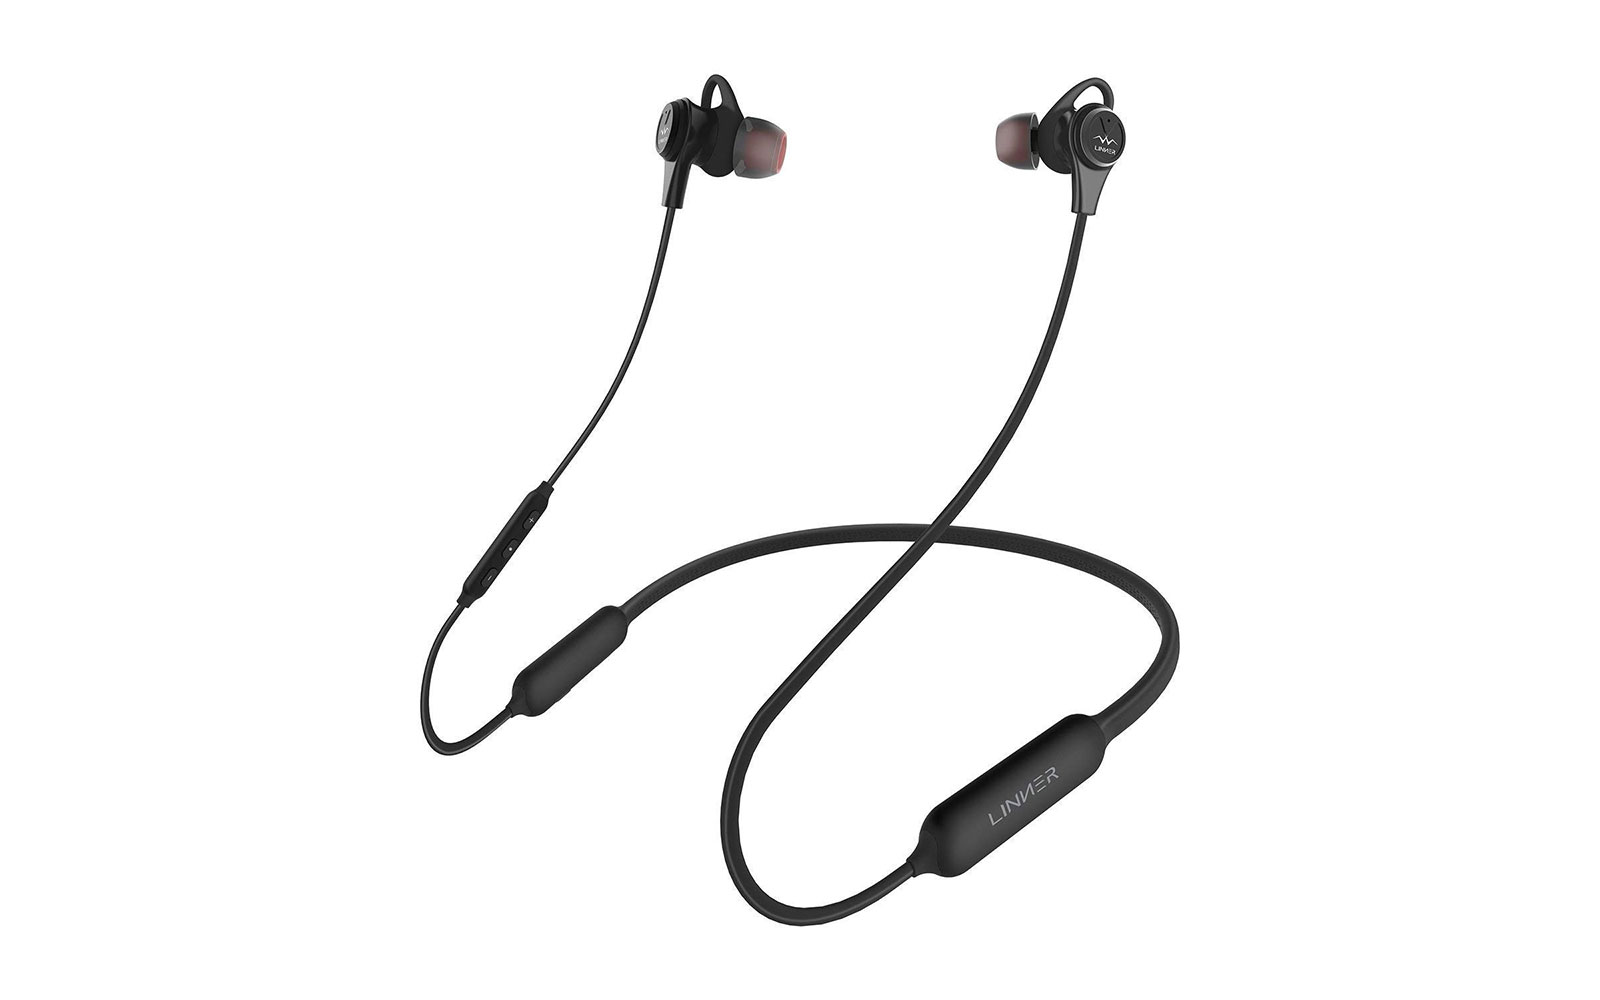 LINNER In Ear Noise Cancelling Headphones, Wireless Bluetooth Earbuds